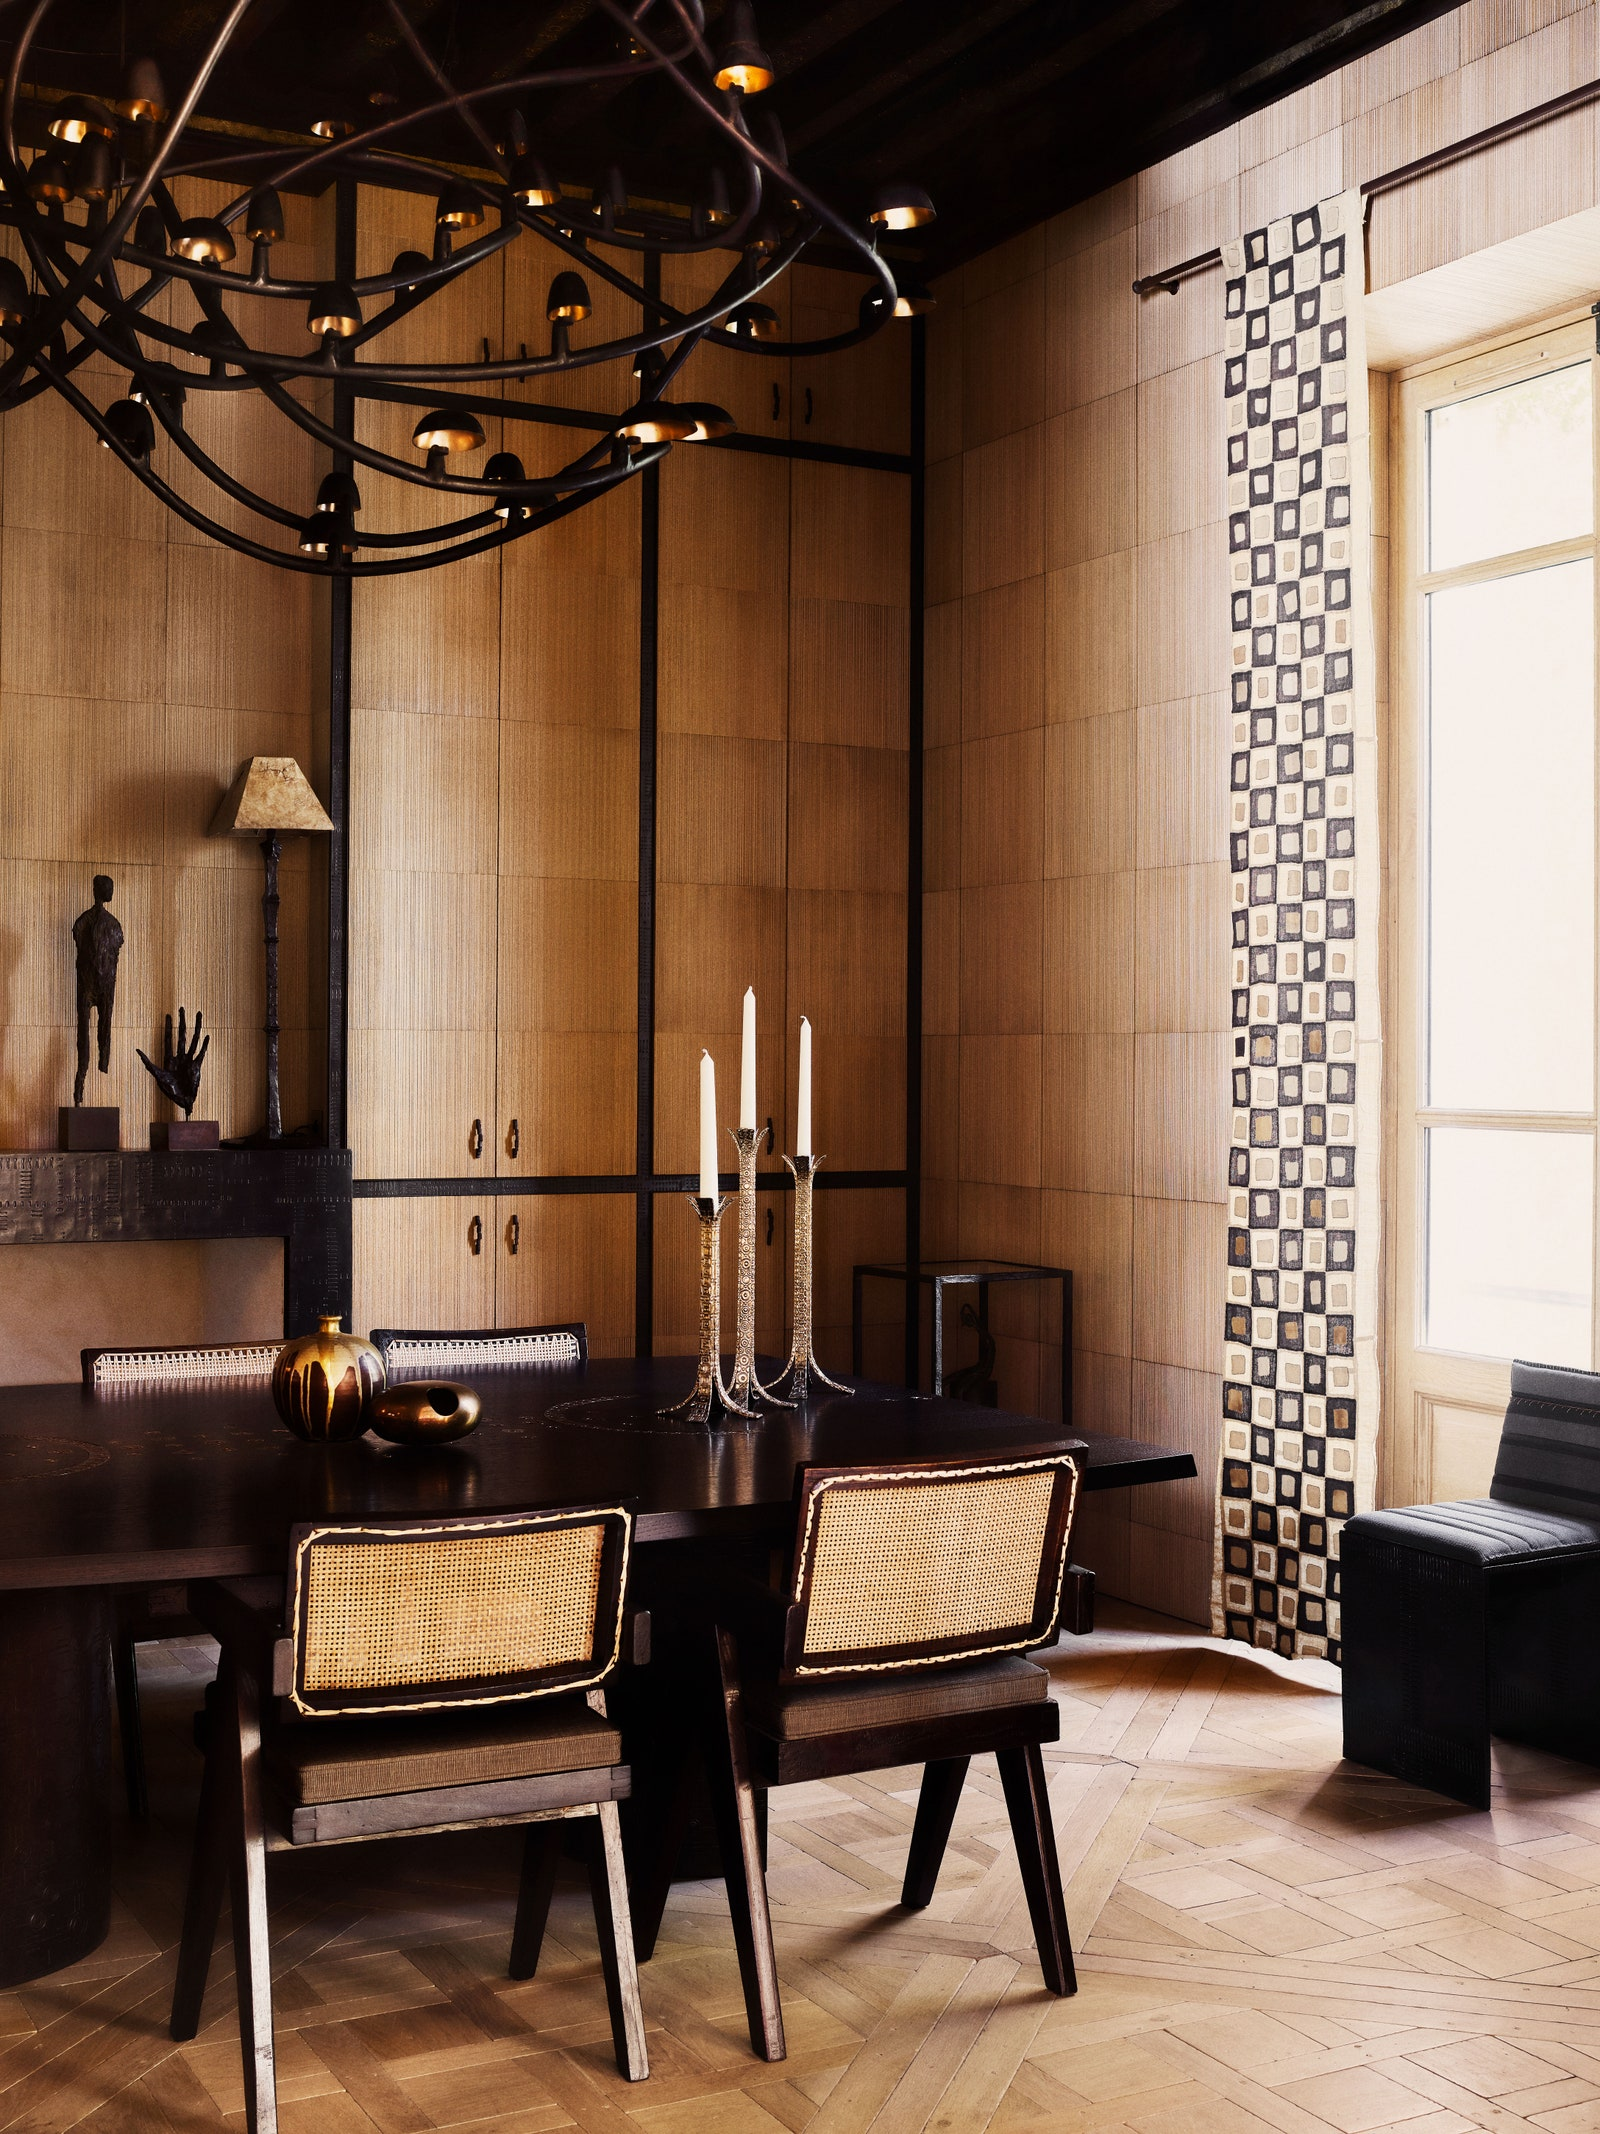 pPierre Jeanneret chairs surround the Donatdesigned dining table. Bronze chandelierbr by Frederik Molenschot.p